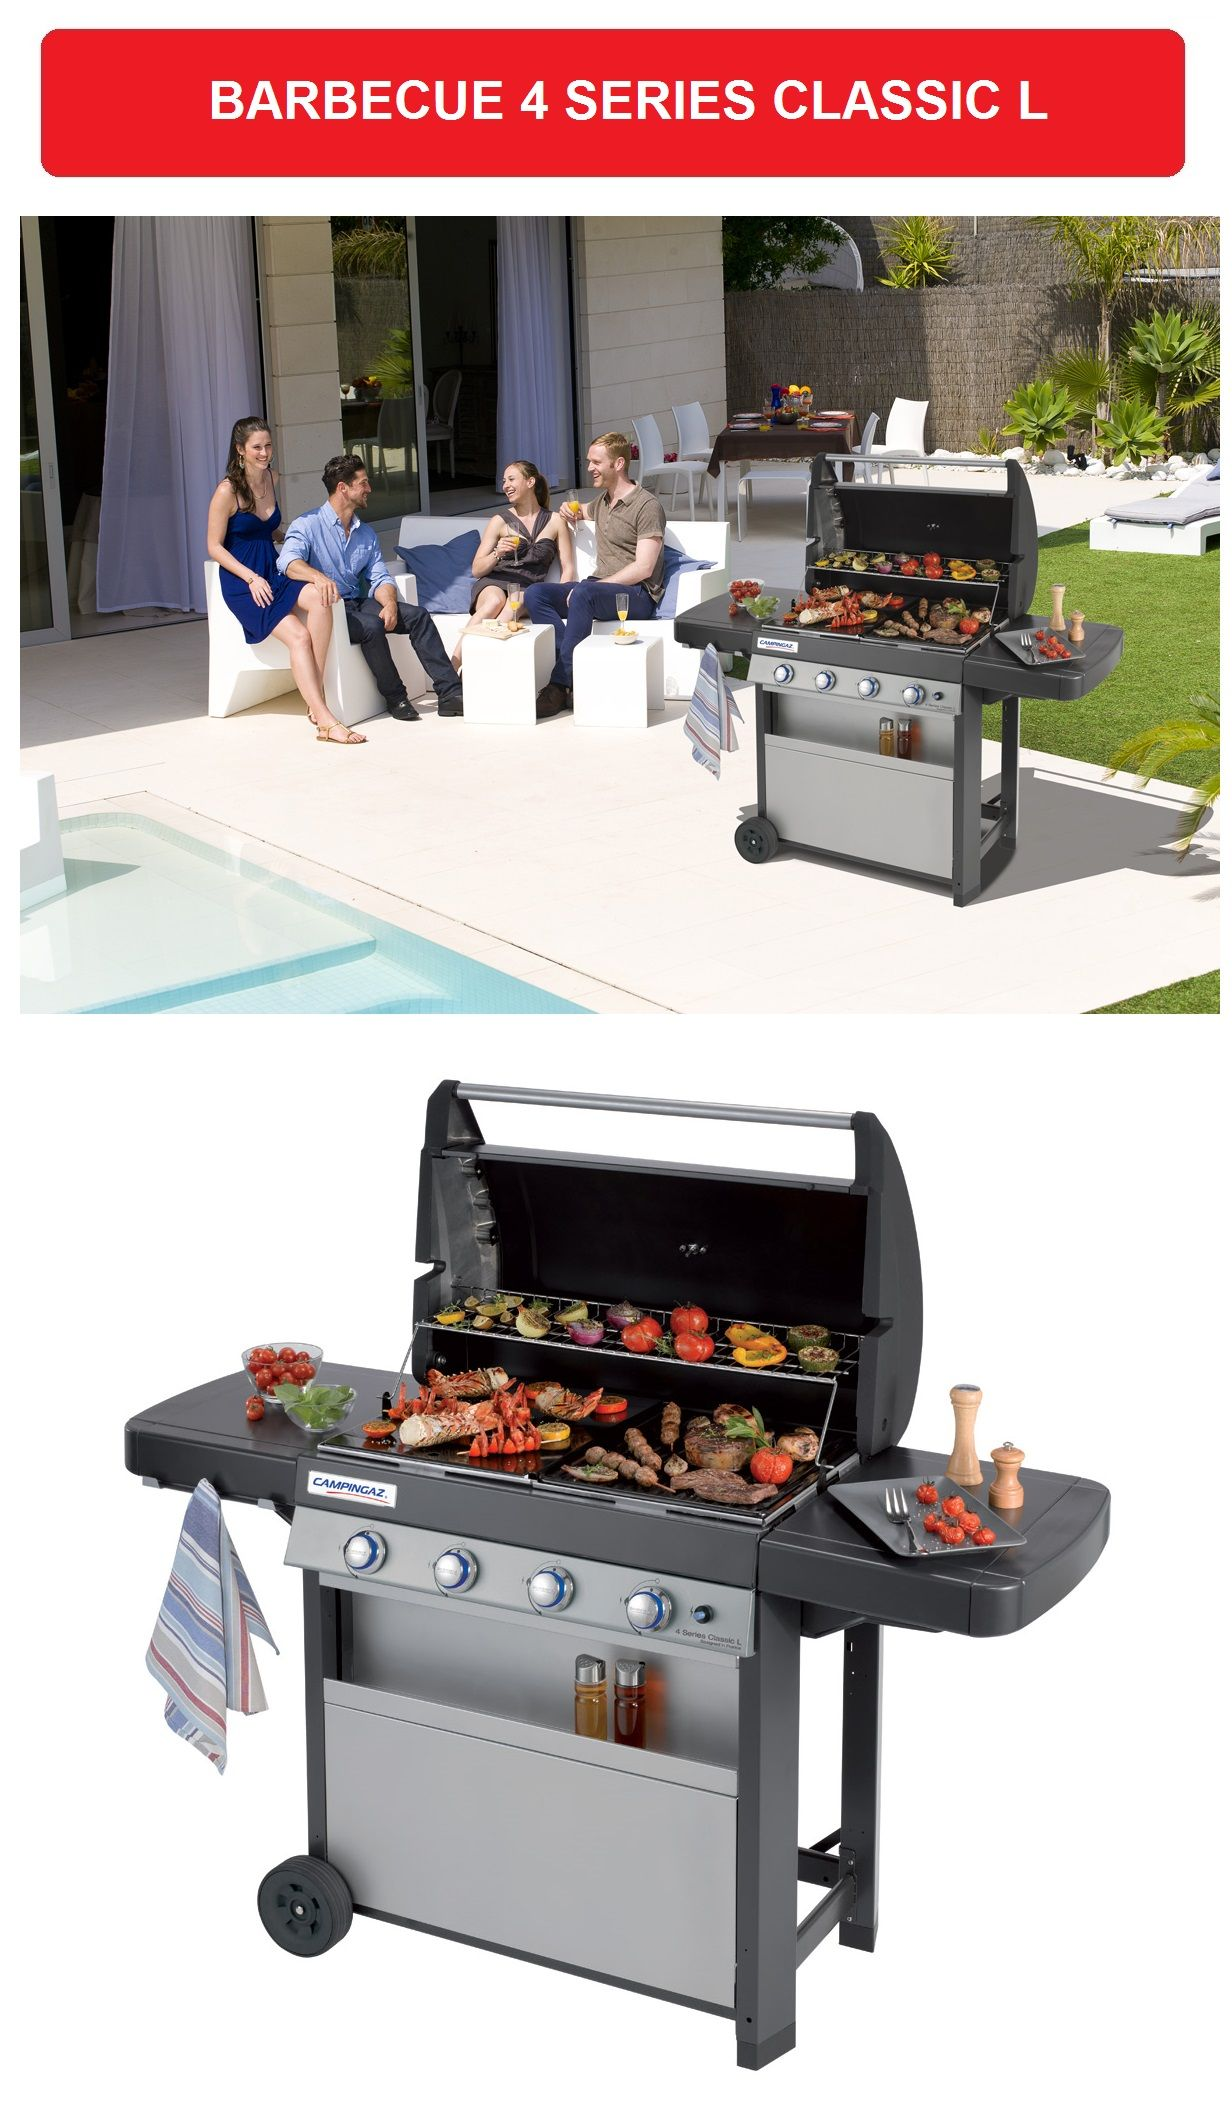 barbecue a gas 4 series classic l campingaz sistema. Black Bedroom Furniture Sets. Home Design Ideas